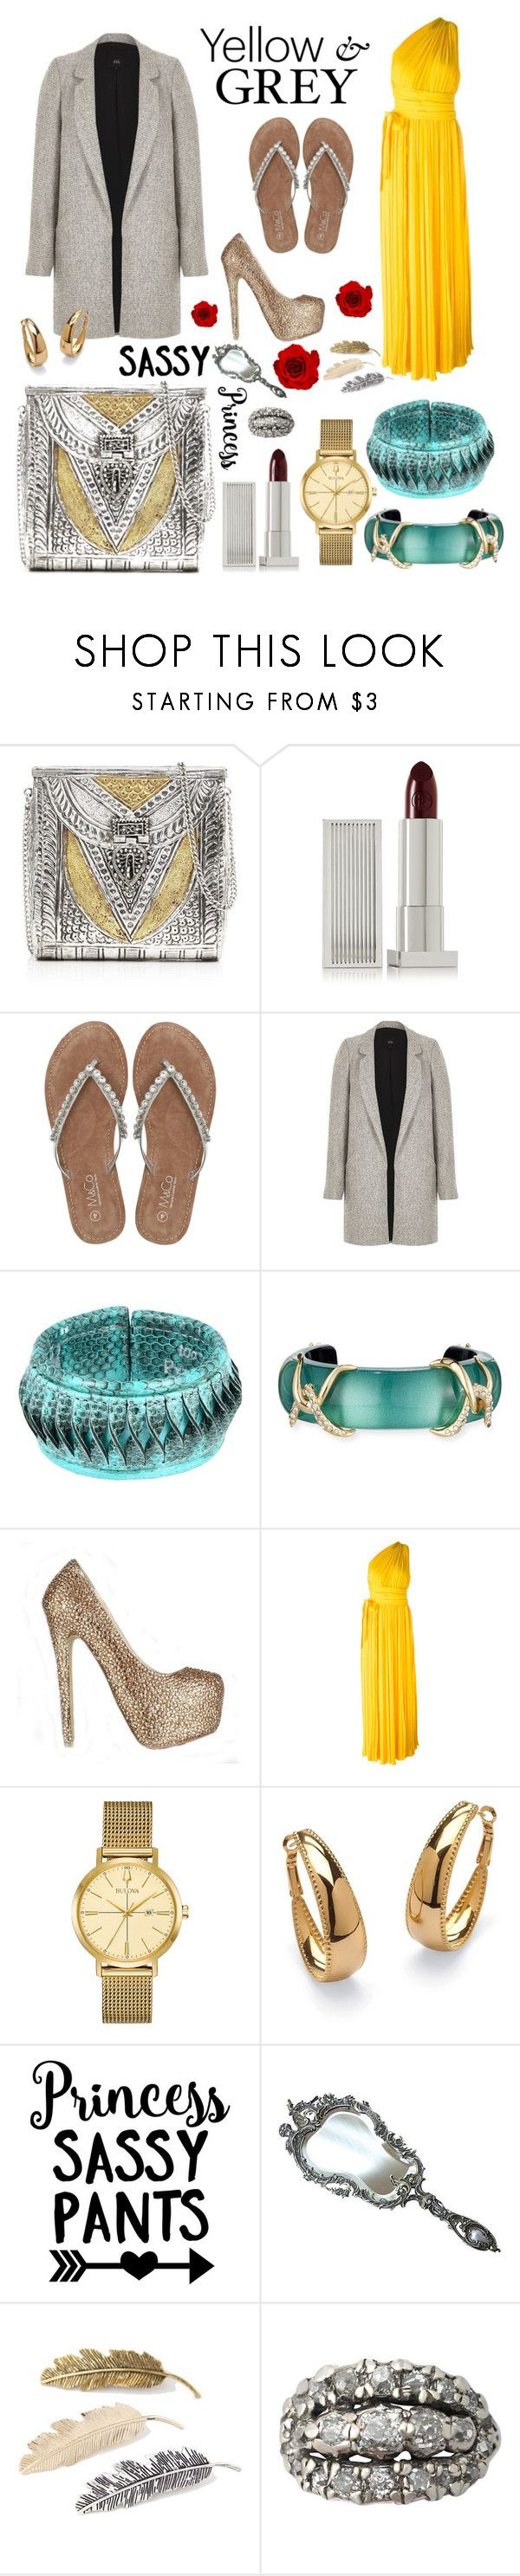 """""""Heelprints In The Sand... Empire Princess travelling European beaches in casually elegant style."""" by lanaspreco ❤ liked on Polyvore featuring From St Xavier, Lipstick Queen, M&Co, River Island, Alexis Bittar, Dsquared2, Bulova and Palm Beach Jewelry"""